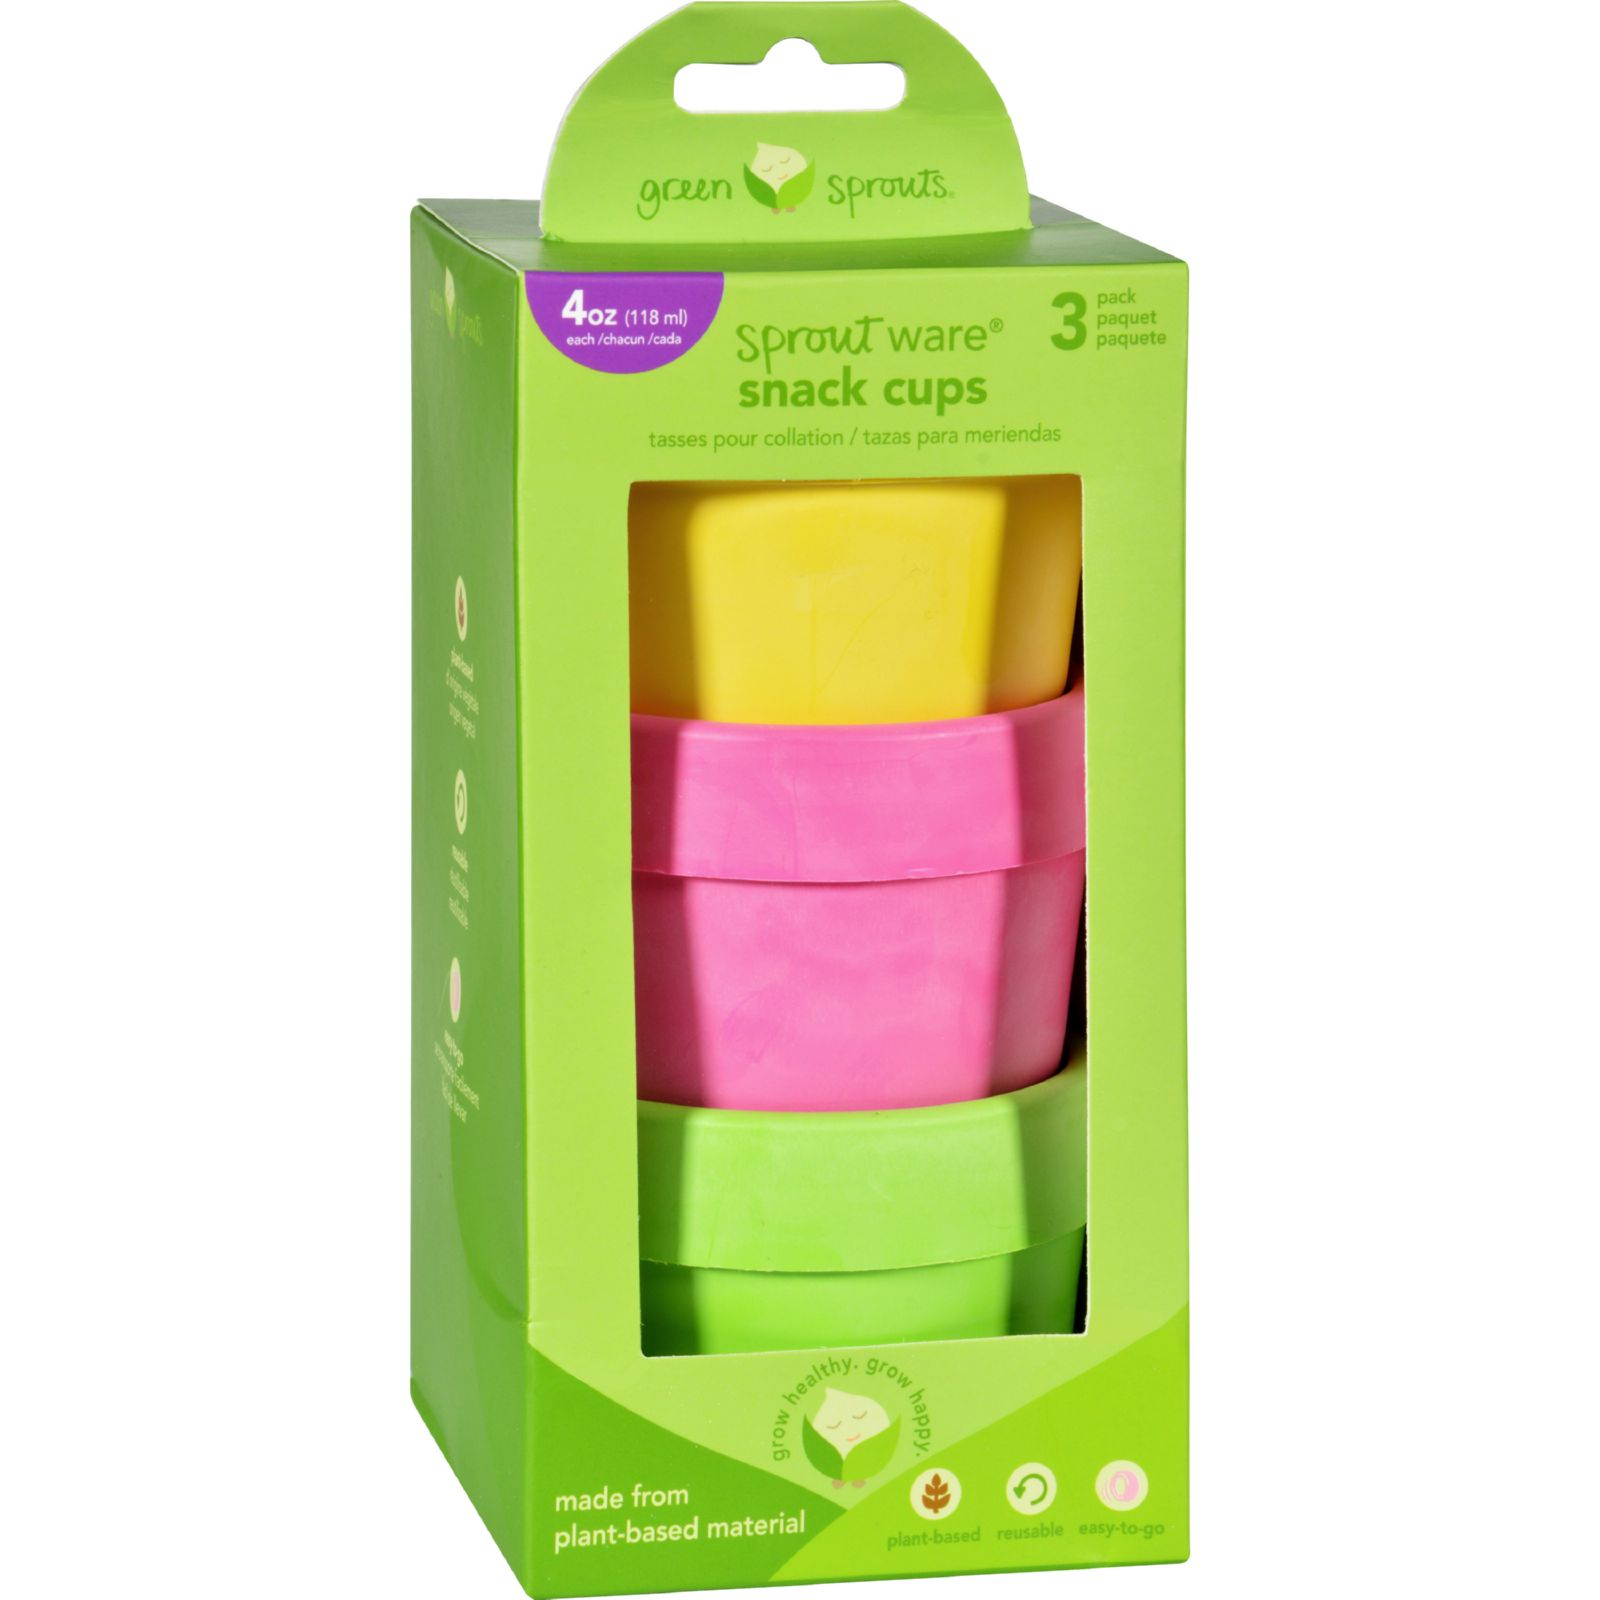 Green Sprouts Sprout Ware Snack Cup - Pink Three 4 oz cups